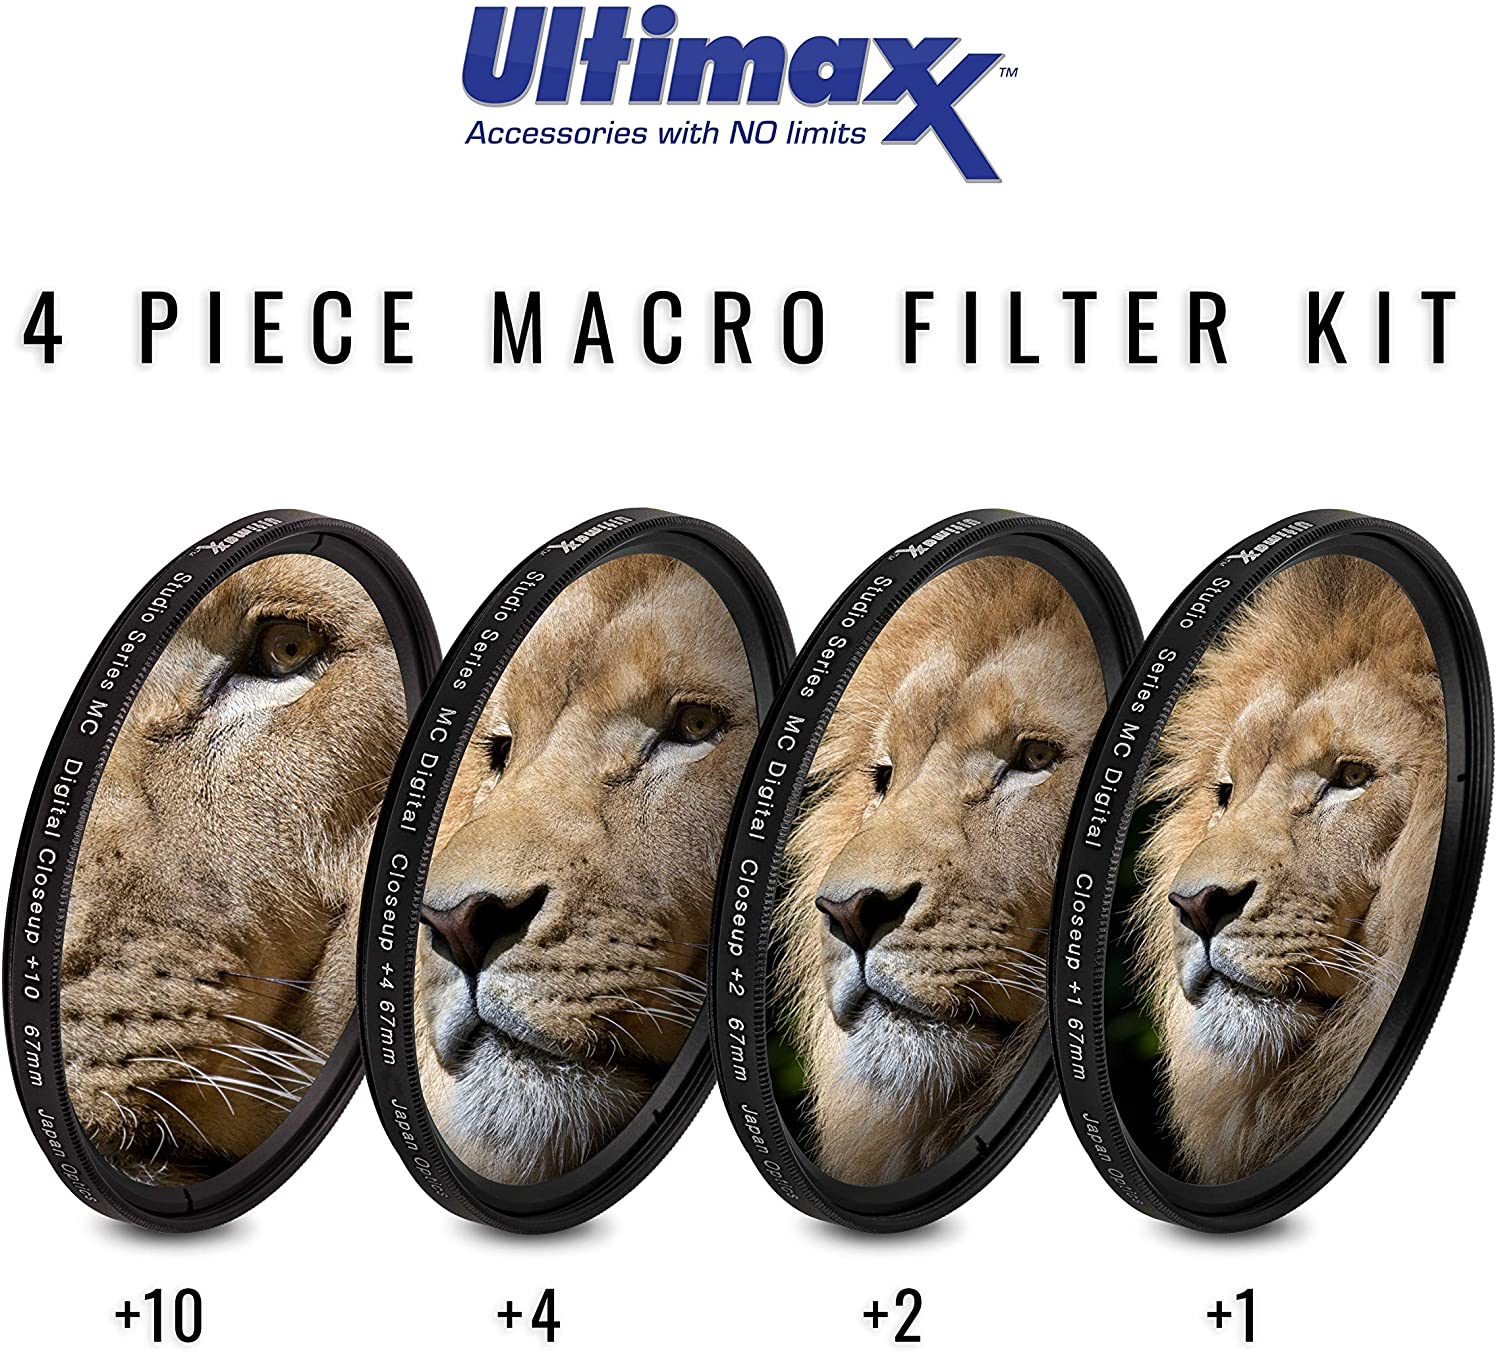 82MM Ultimaxx Professional Four Piece HD Macro Close-up Filter Kit for Camera Lens with 82MM Filter Thread and Protective Filter Pouch 1, 2, 4, 10 Diopter Filters